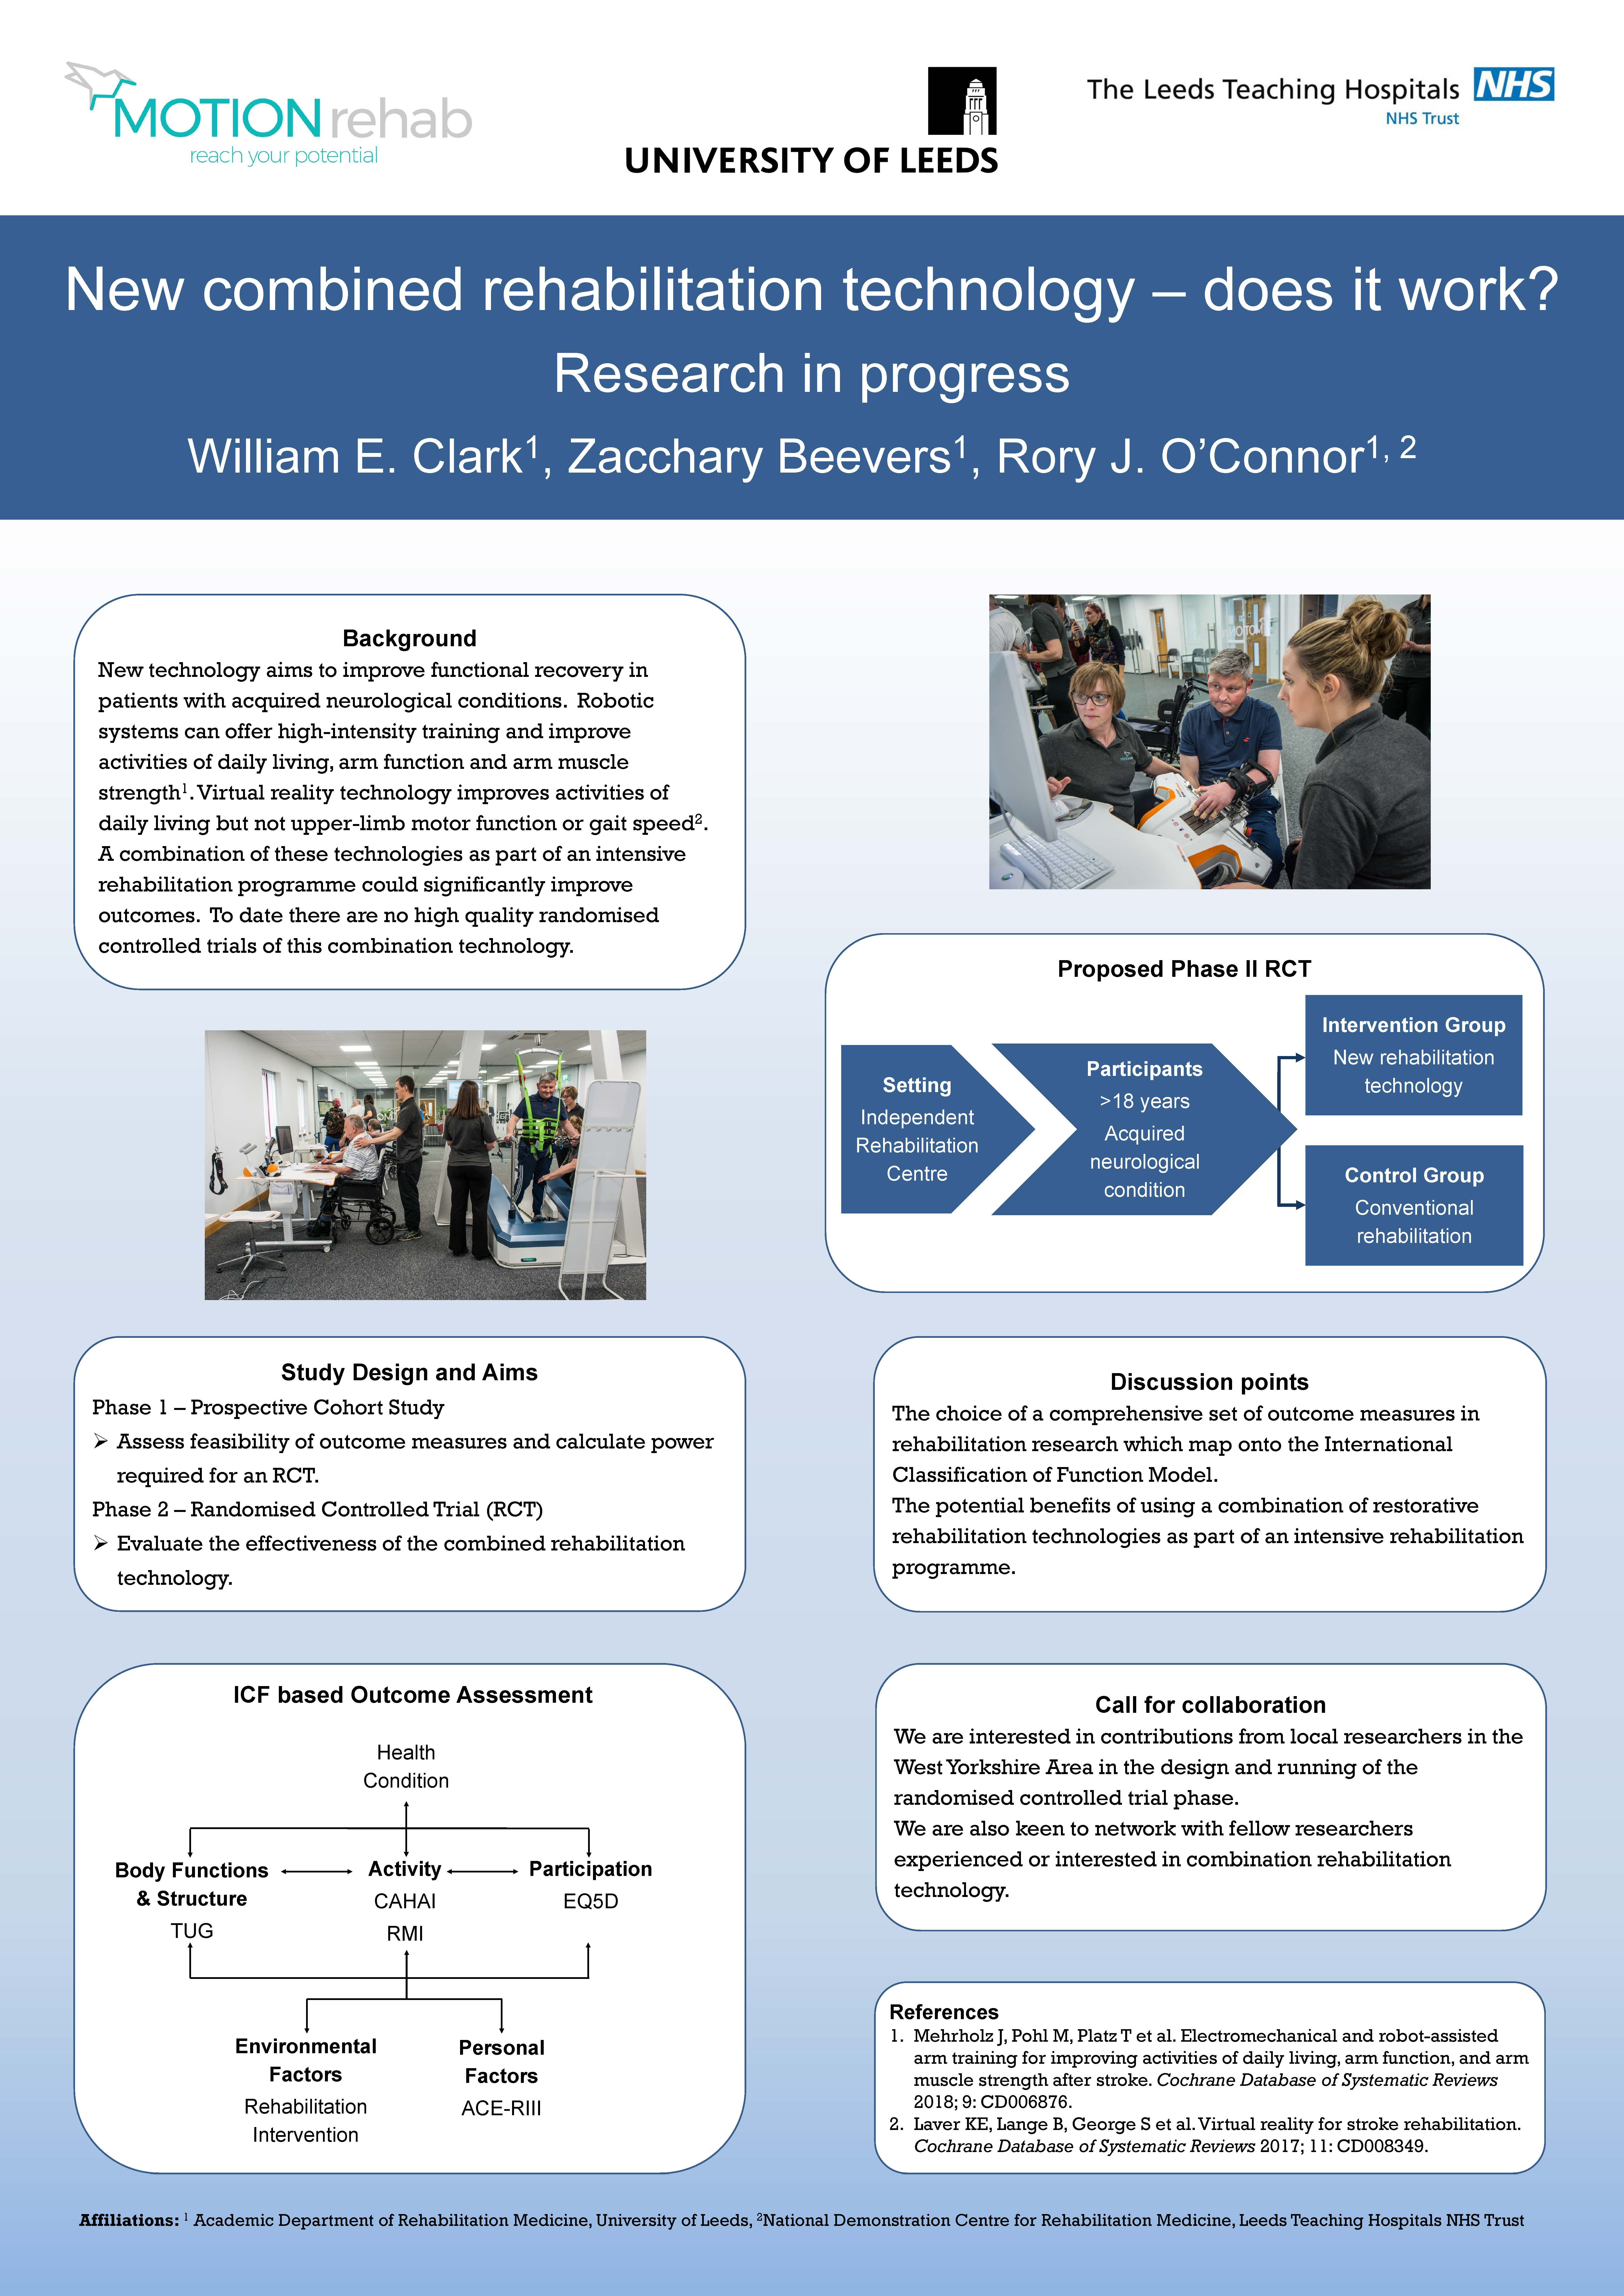 New combined rehabilitation technology – does it work? Research in progress